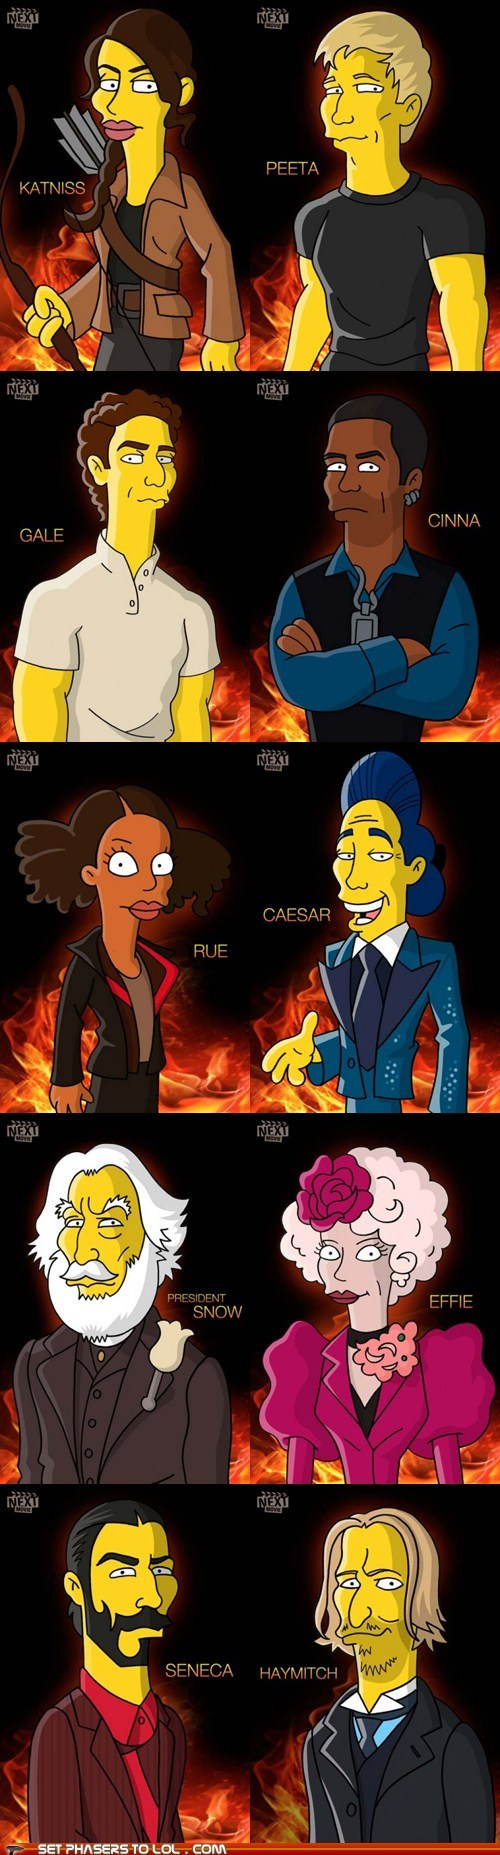 cartoons,characters,cinna,effie trinket,gale,hunger games,katniss,Movie,peeta,president snow,rue,simpsons